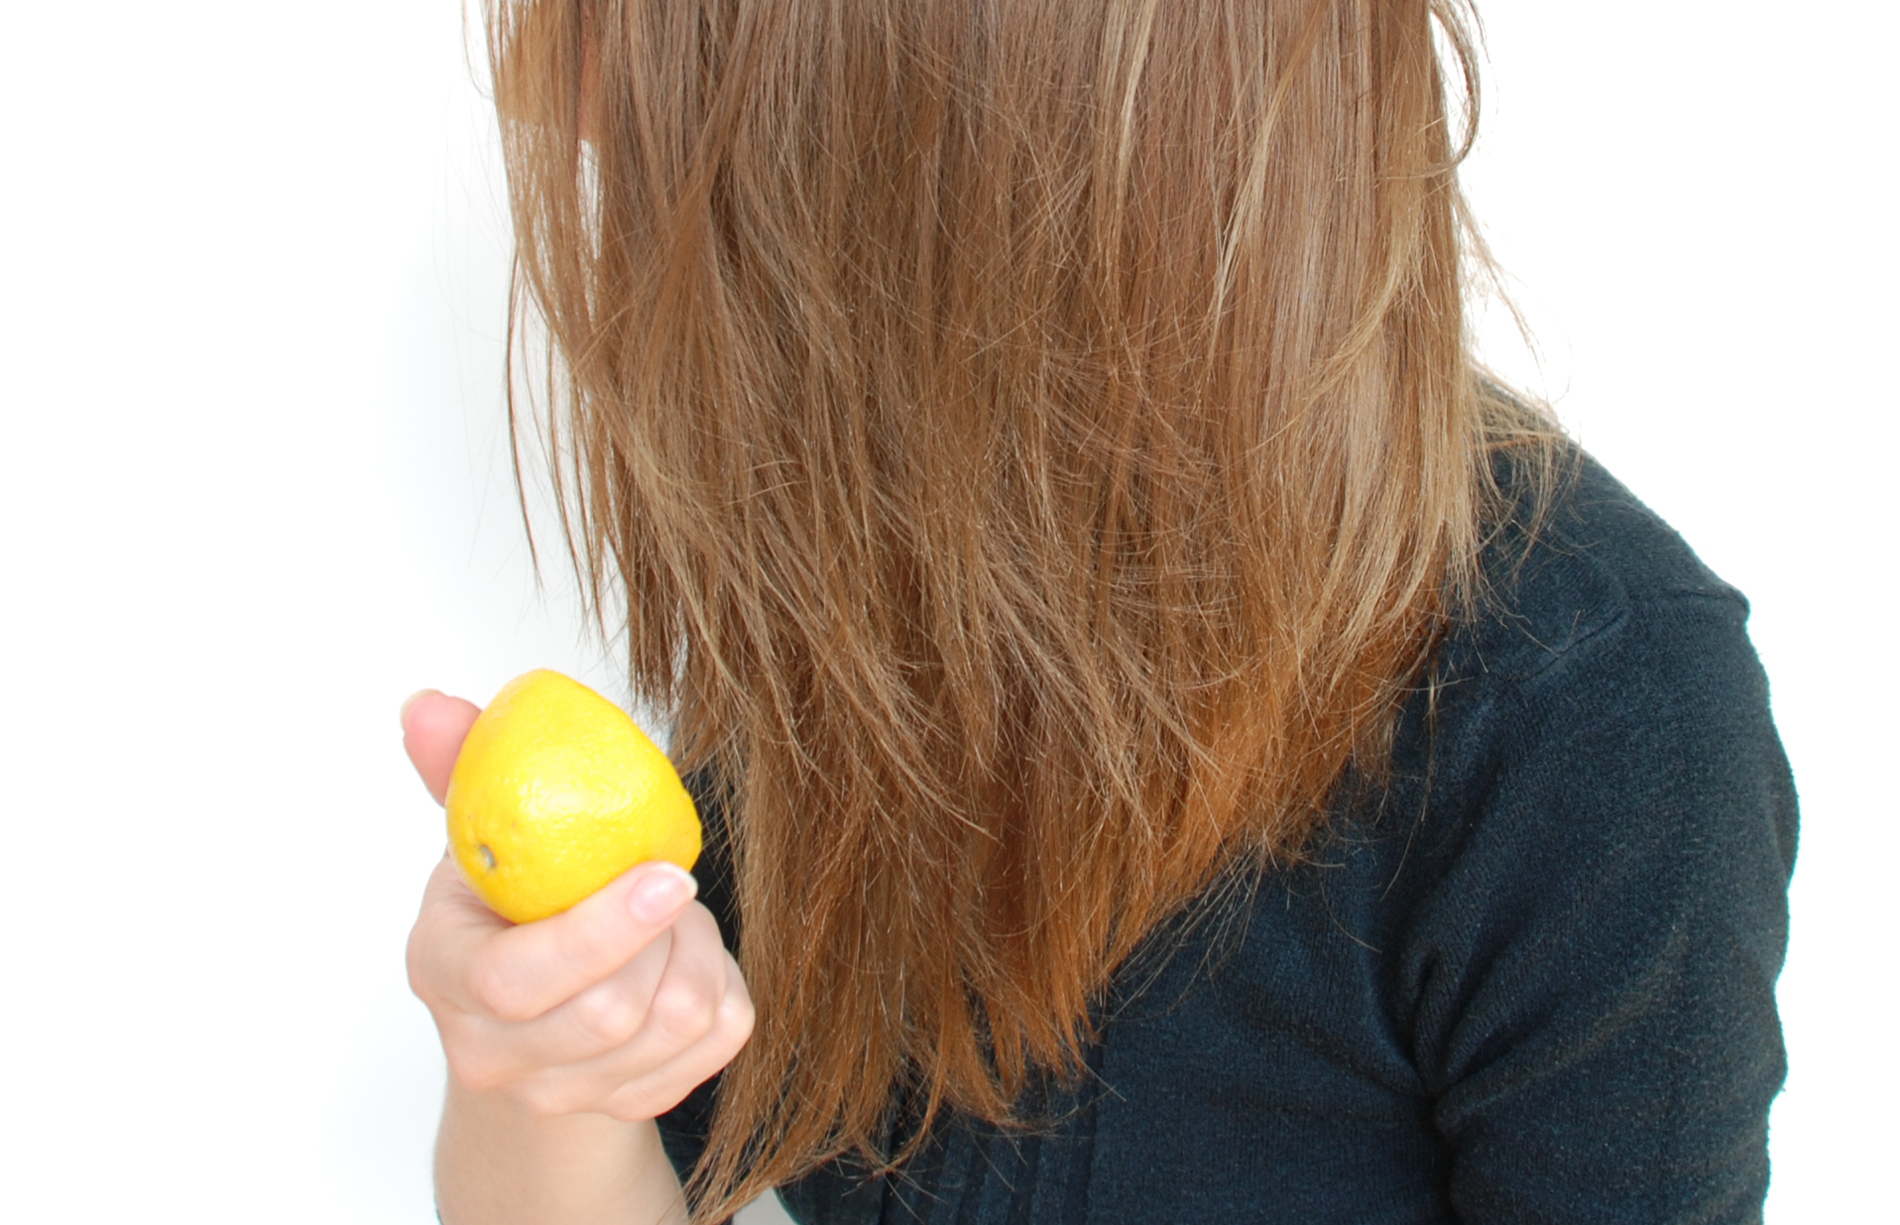 lemon on hair for highlights